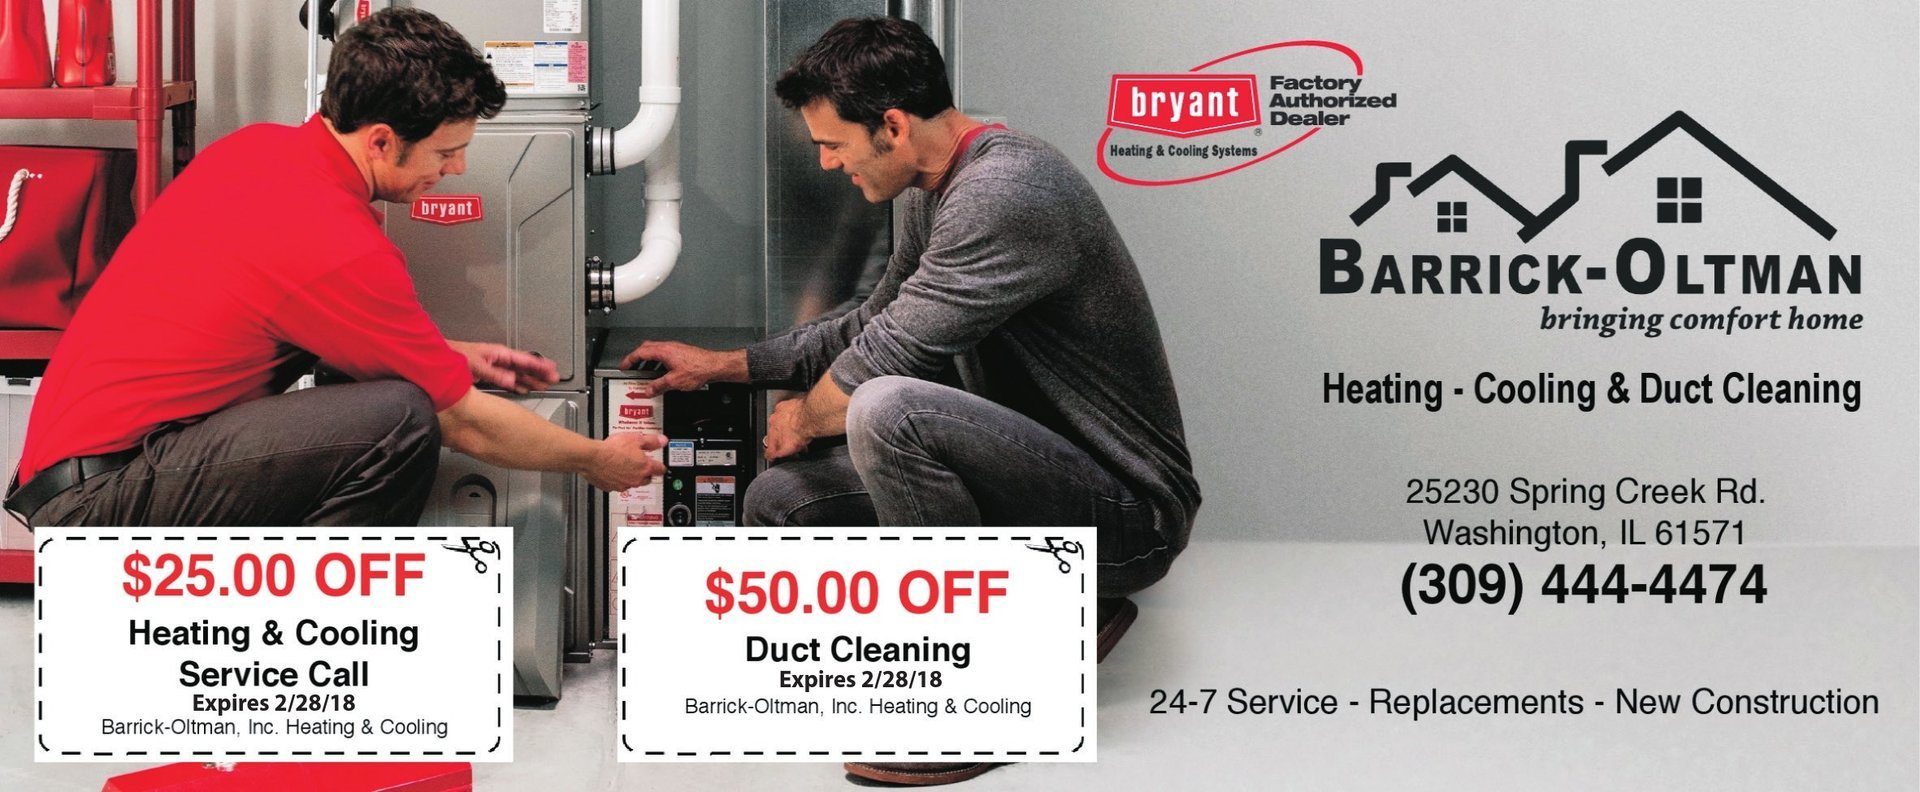 Barrick-Oltman Heating and Cooling Duct Cleaning coupons $25 and $50 off Washington, IL